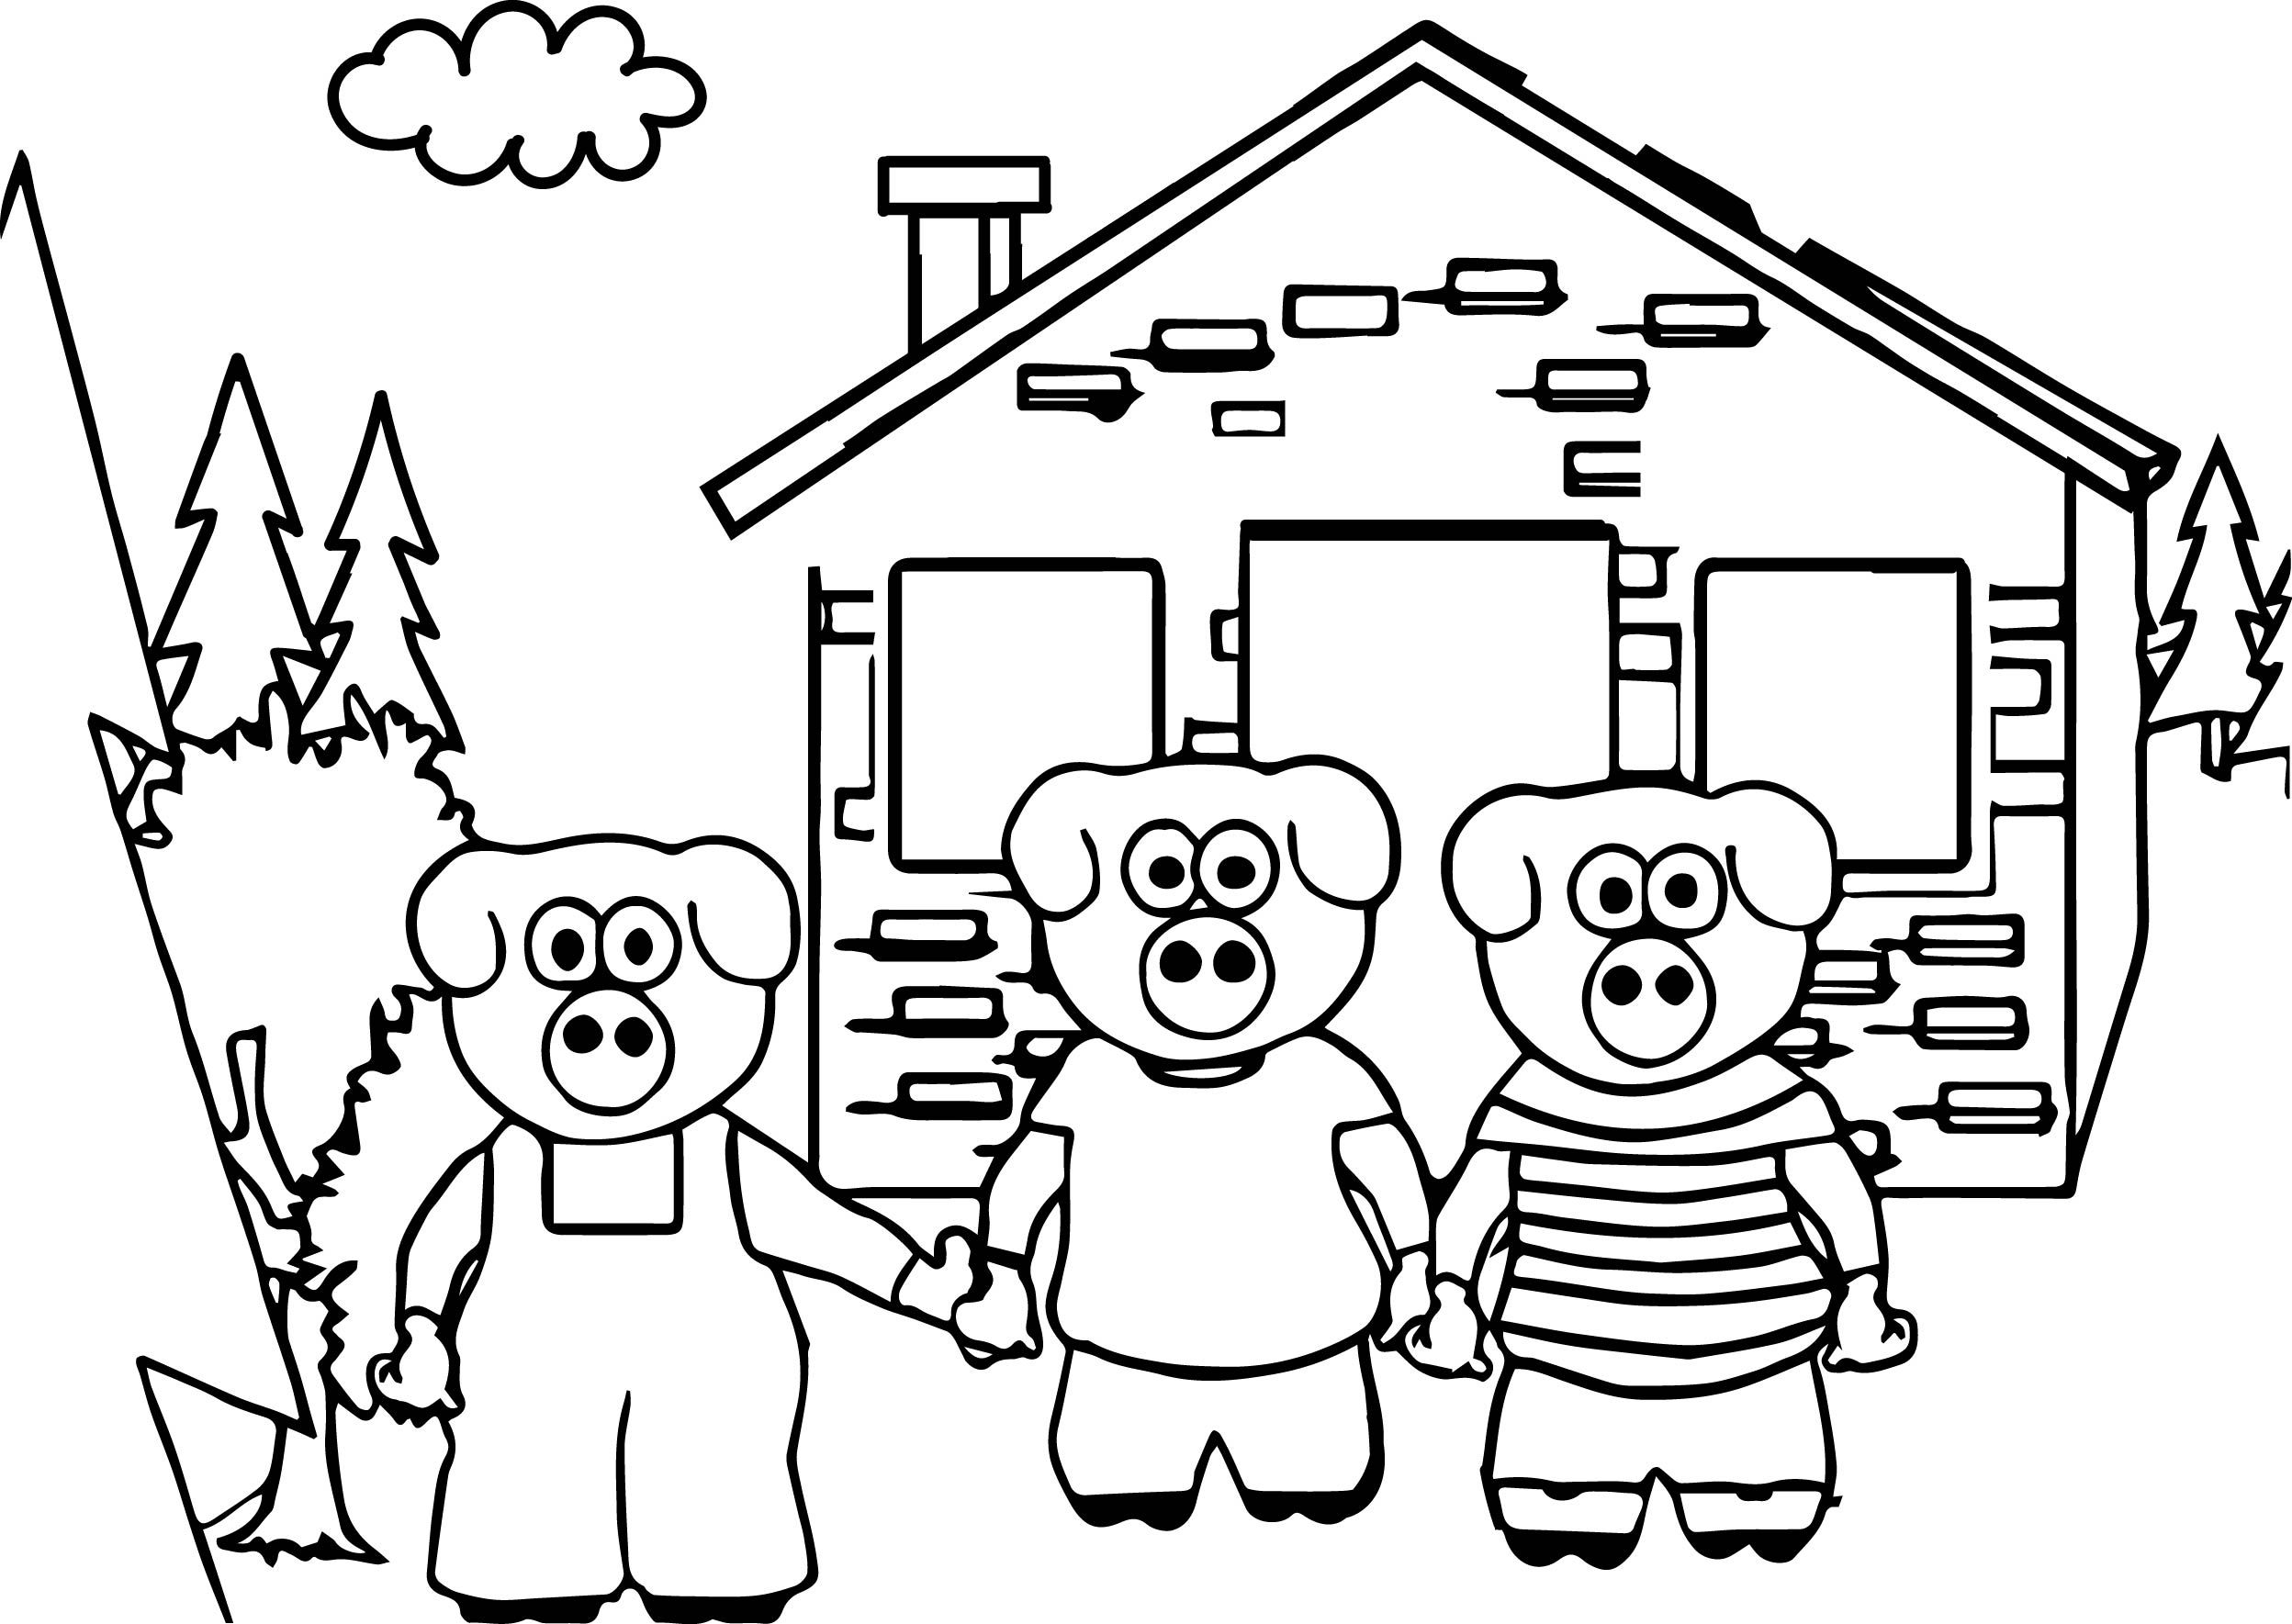 Awesome Keys To Literacy Three Little Pigs Coloring Page Coloring Pages Three Little Pigs Coloring Pages For Boys